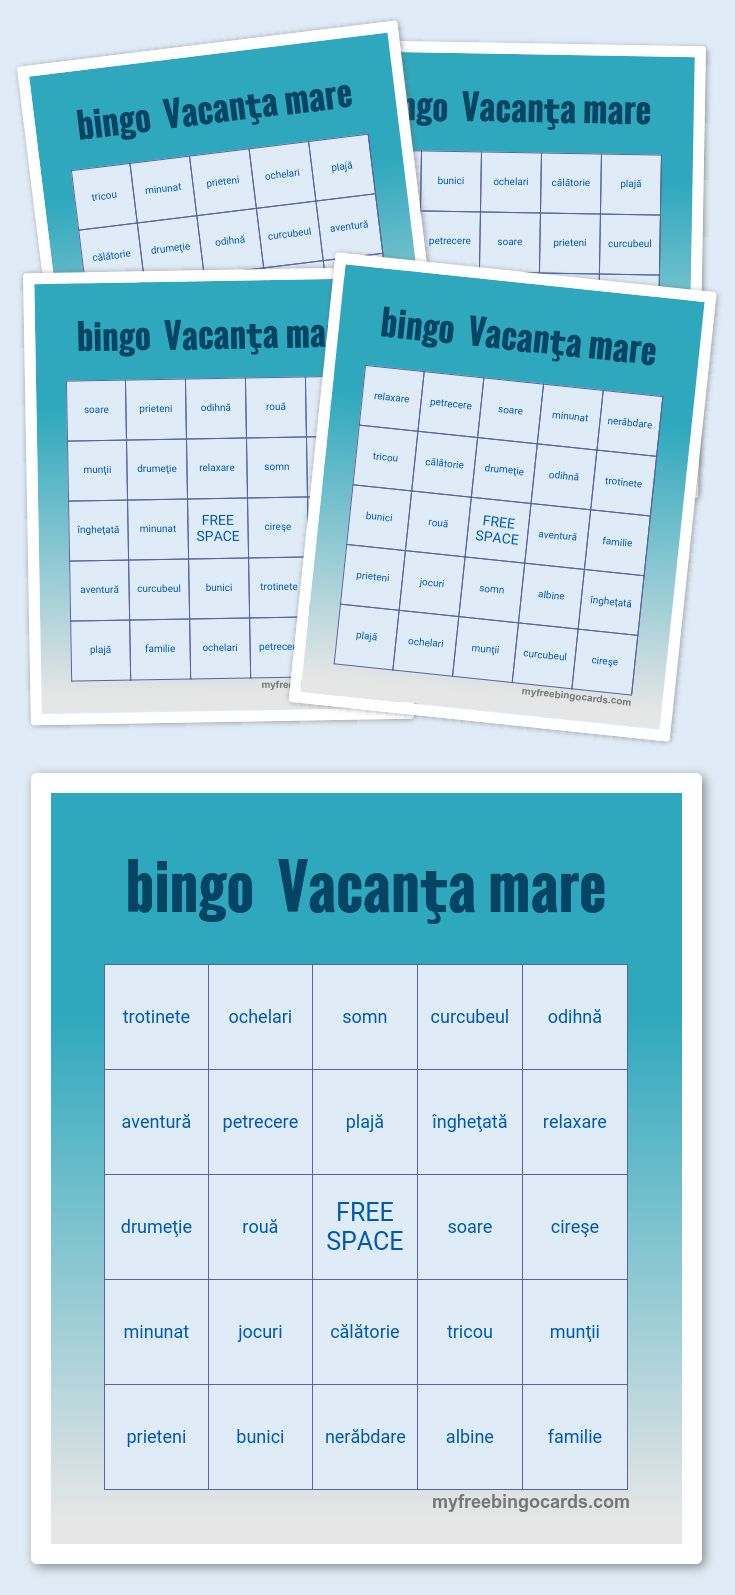 Great 1 Page Resume Format Free Download Big 1 Week Calendar Template Round 10 Best Resume Samples 10 Hour Schedule Templates Young 1099 Int Template Blue1930s Newspaper Template 25  Best Ideas About Bingo Cards On Pinterest | Printable Bingo ..